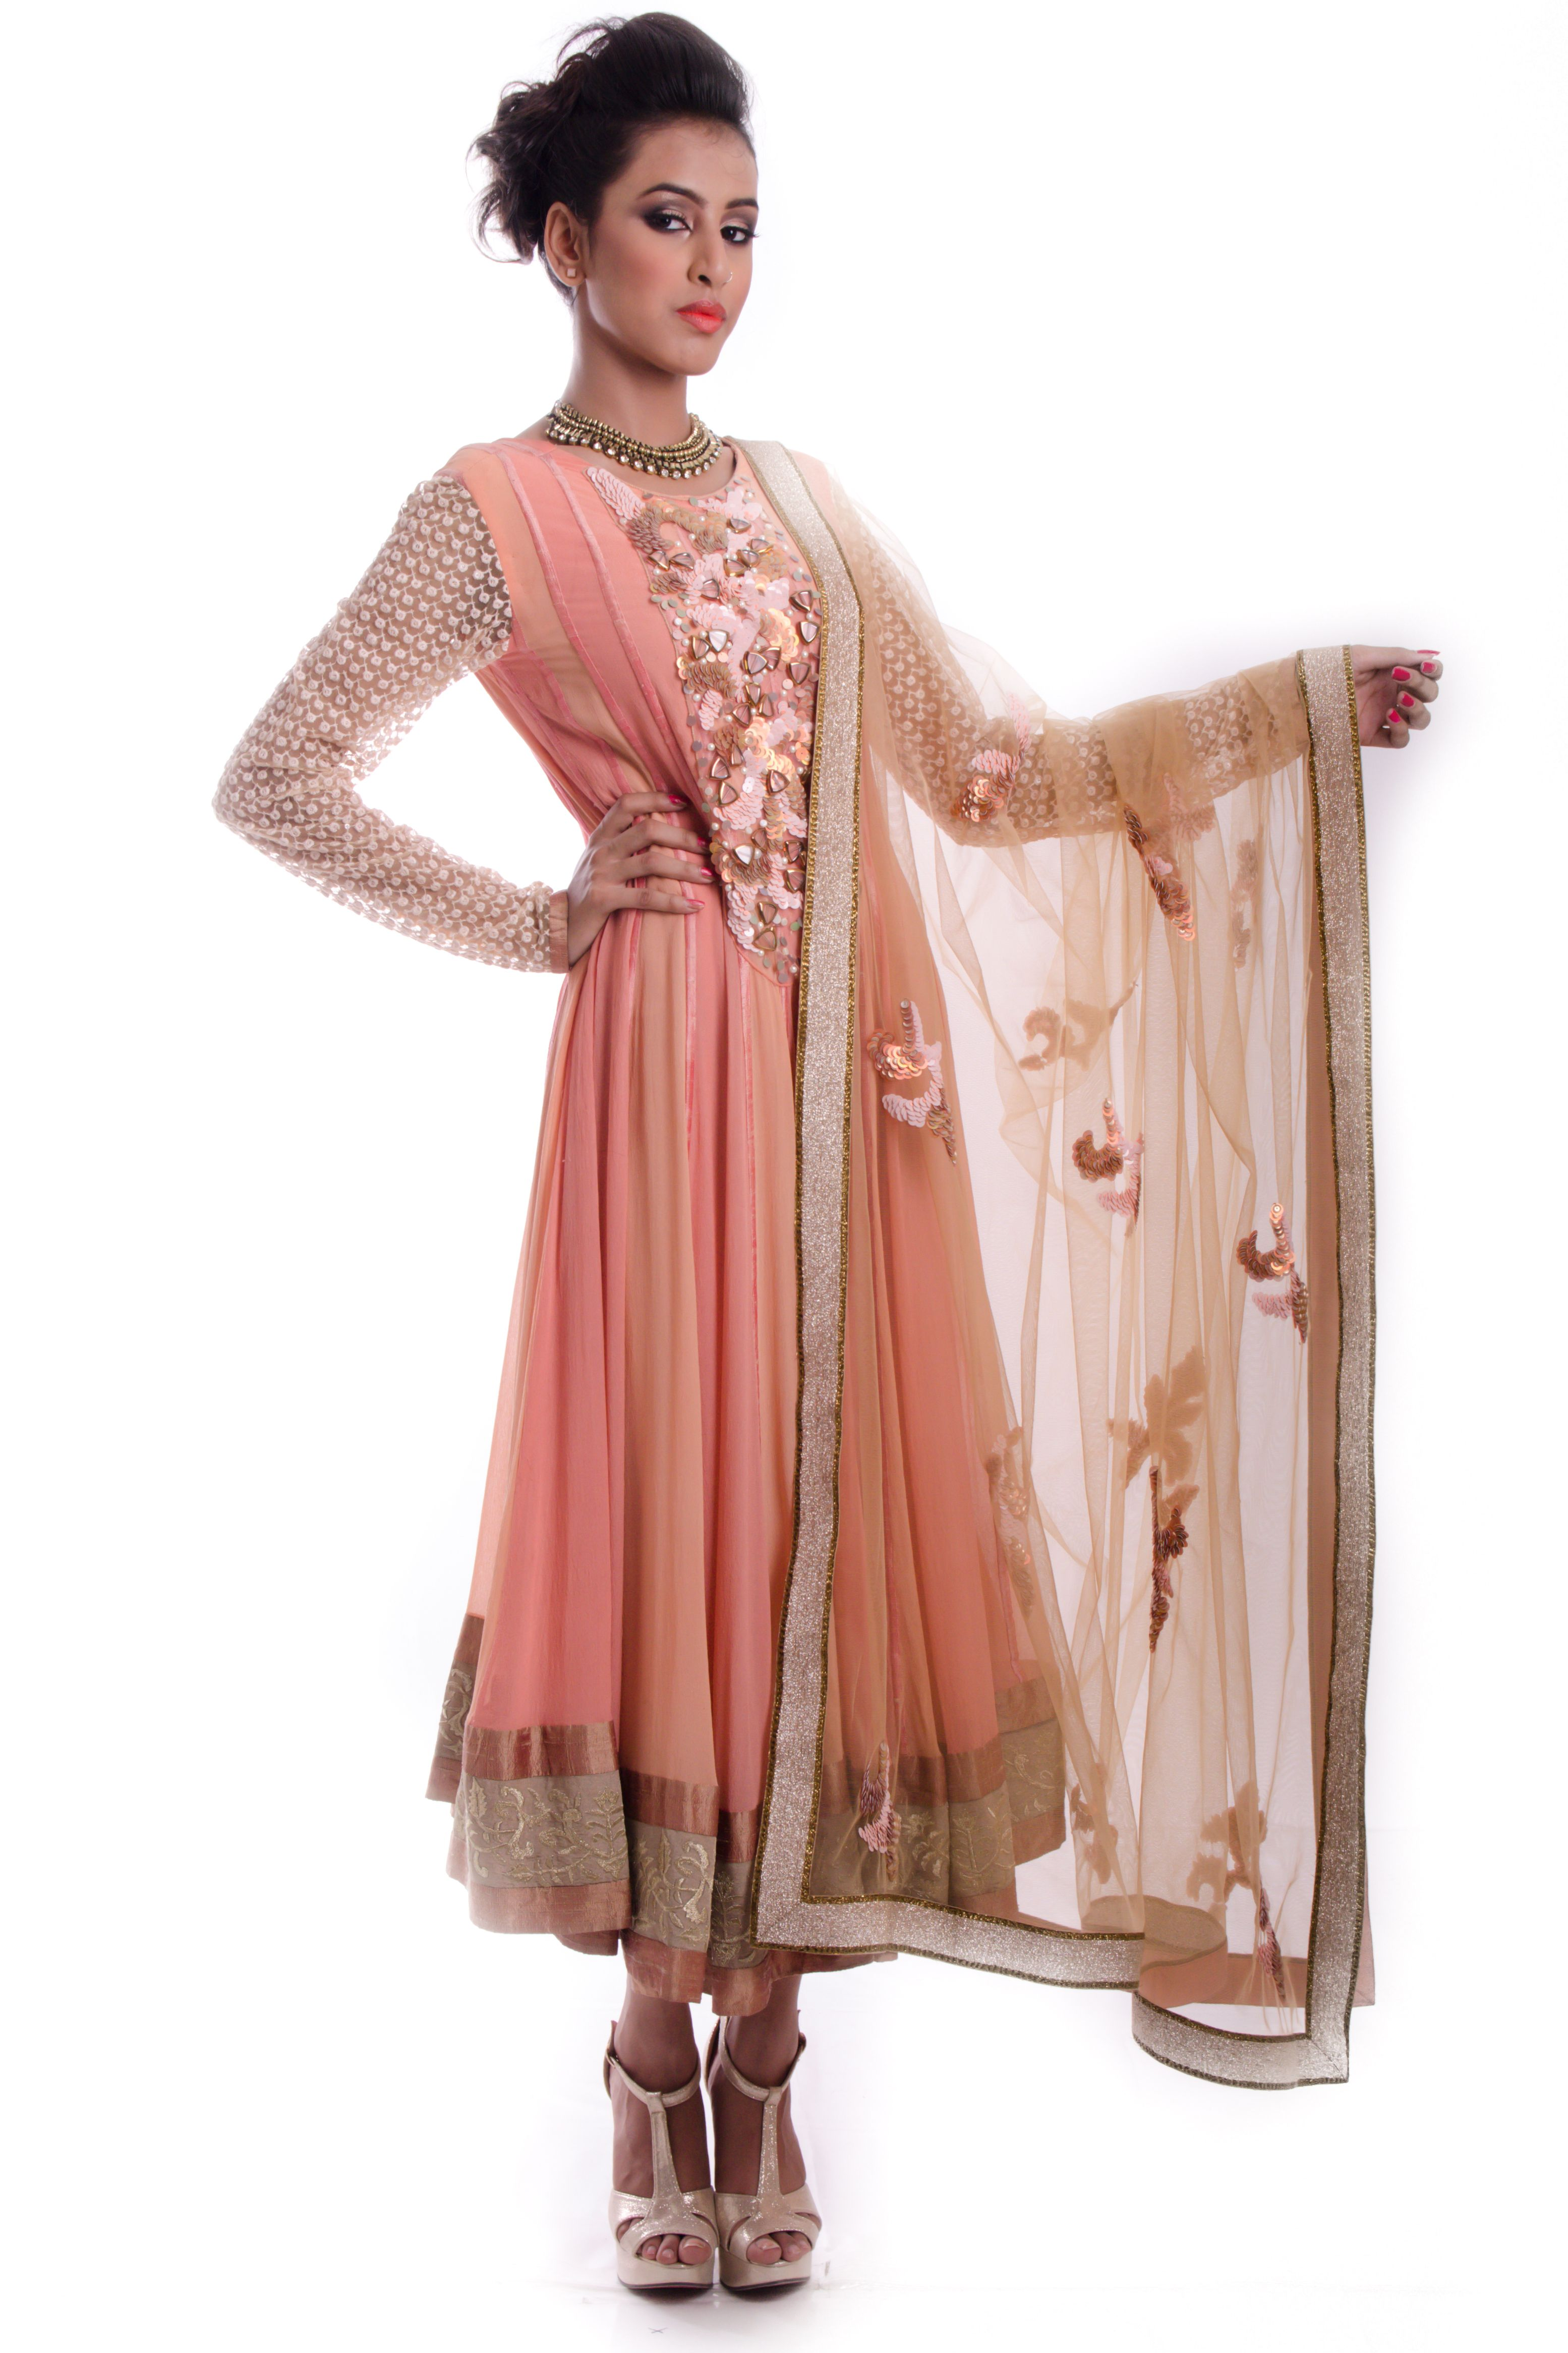 #glitstreet #designer #indian #designerwear #couture #festive #diwali #elegant #weheartit #shopnow  http://www.glitstreet.com/product/pink-suit-with-heavy-chunni-1600-AD-shahpur-jat-3177